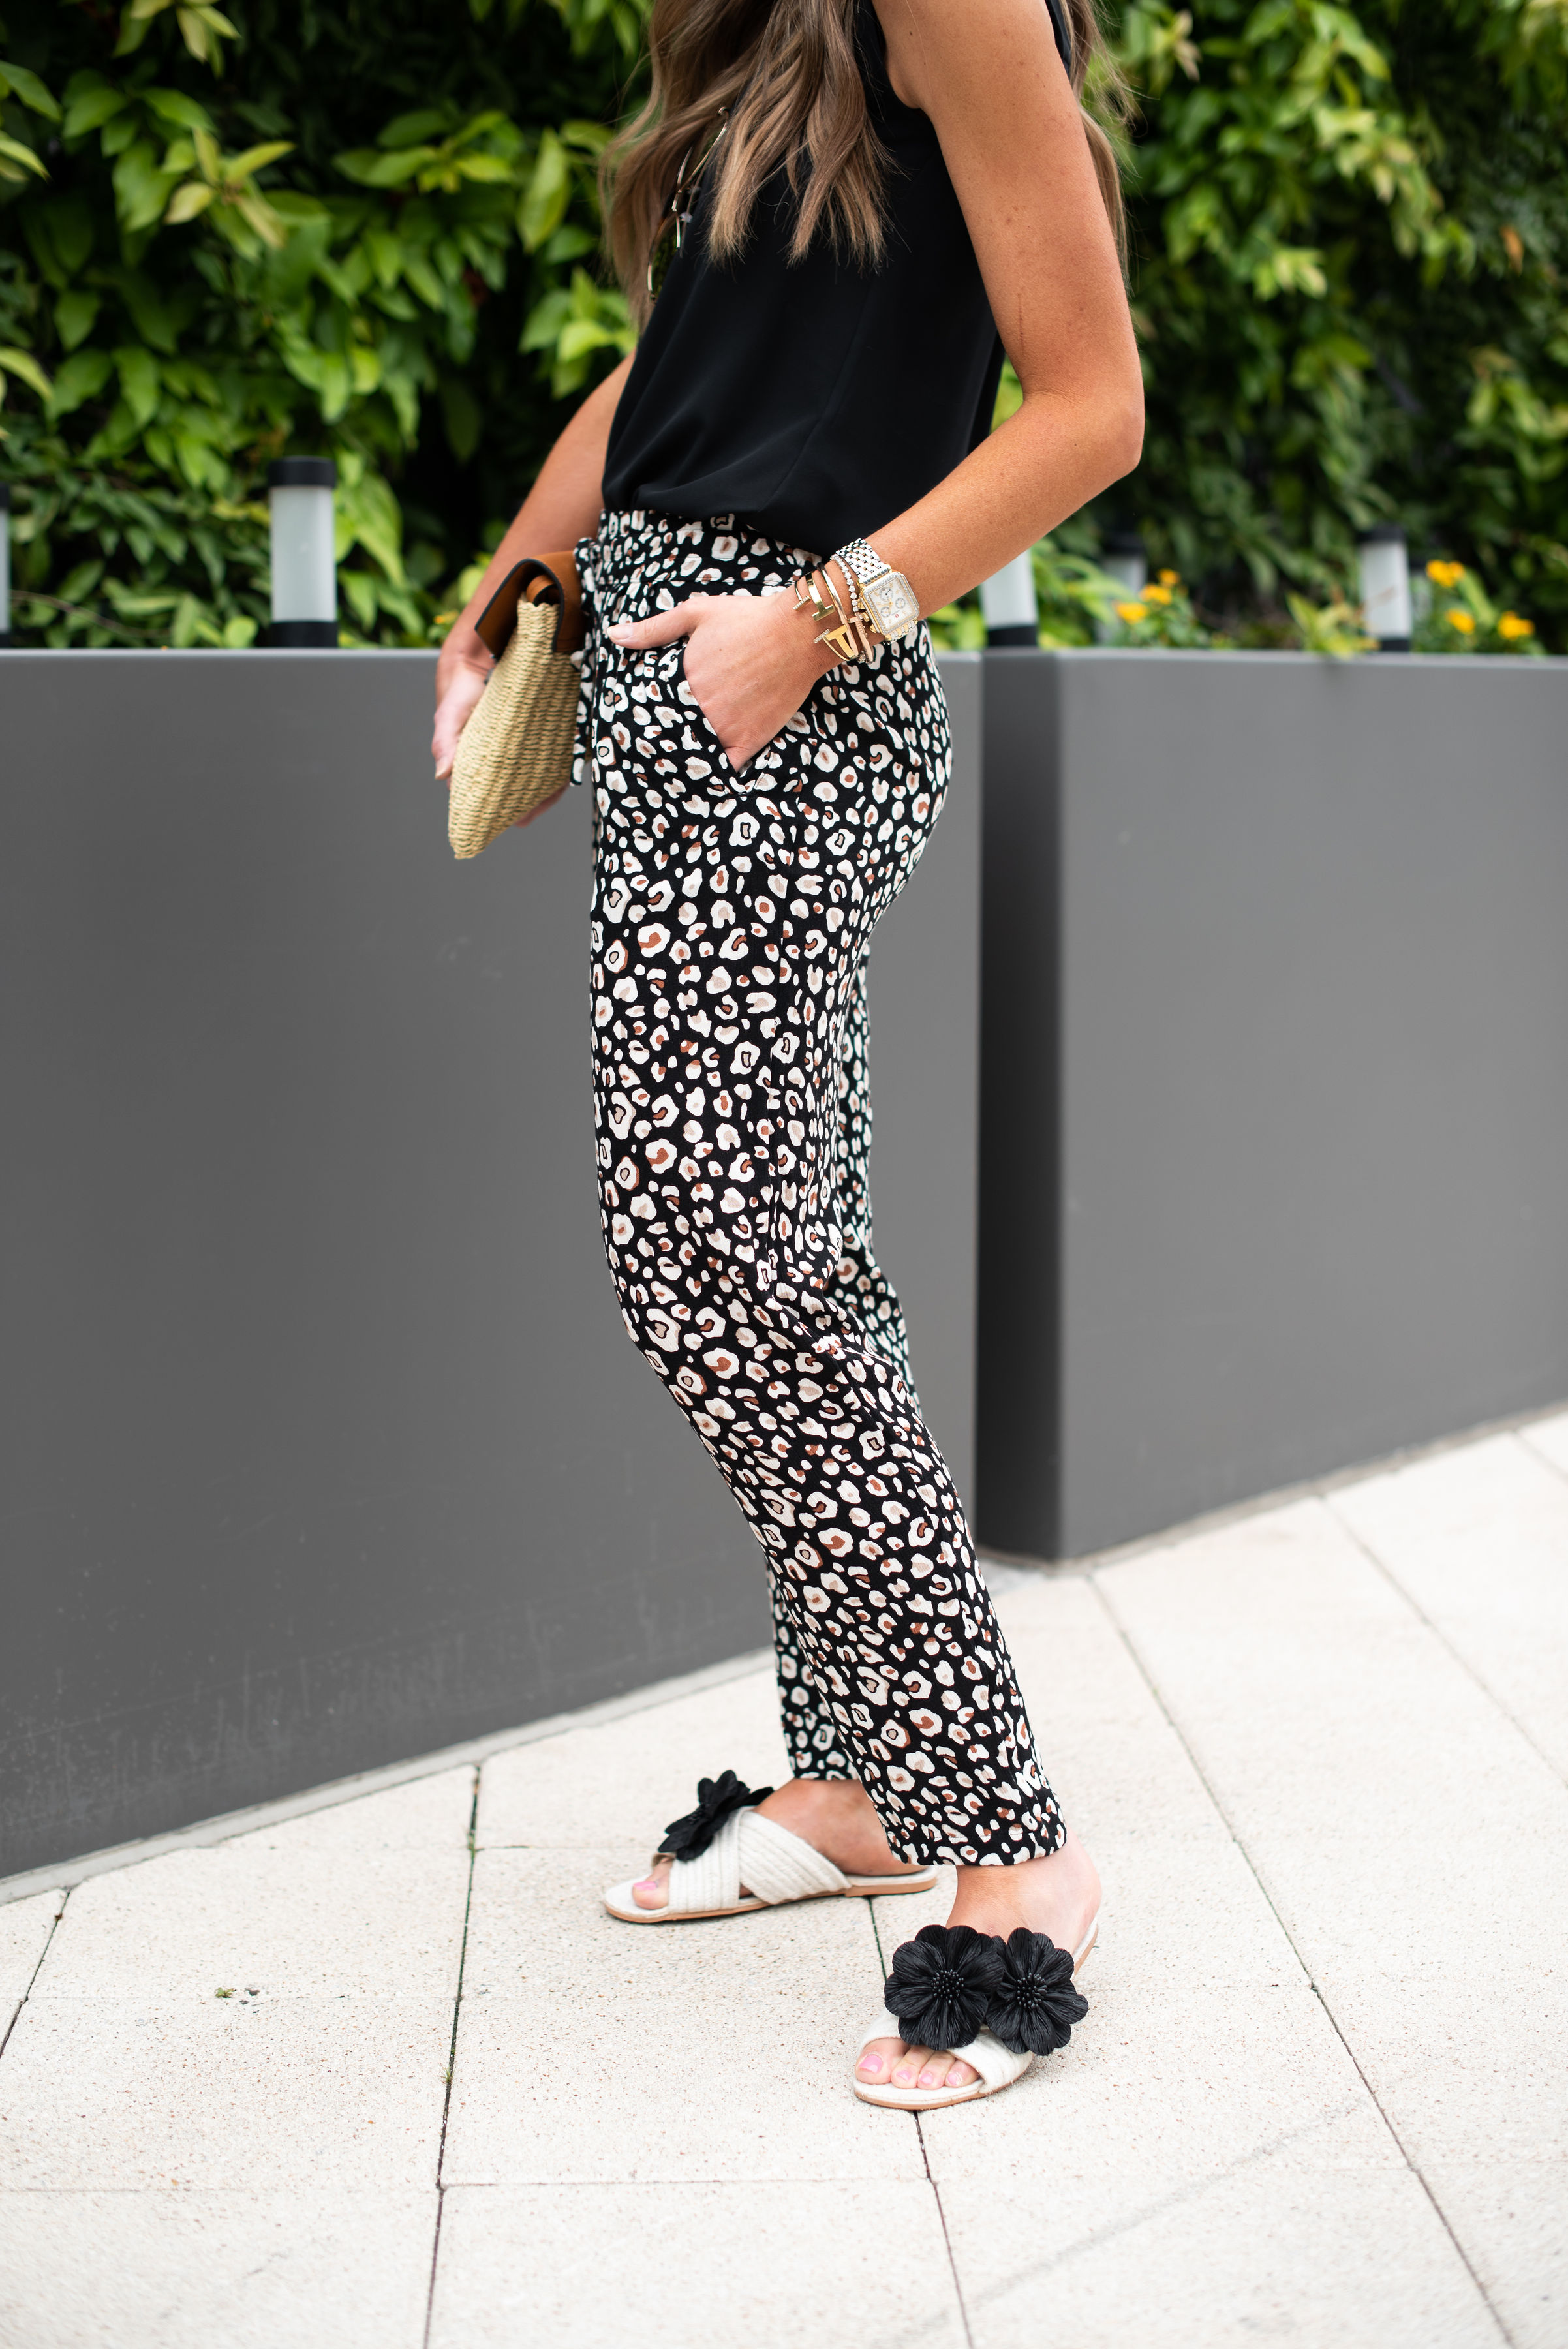 Leopard Jogger Pants   Marks and Spencer   Style Your Senses